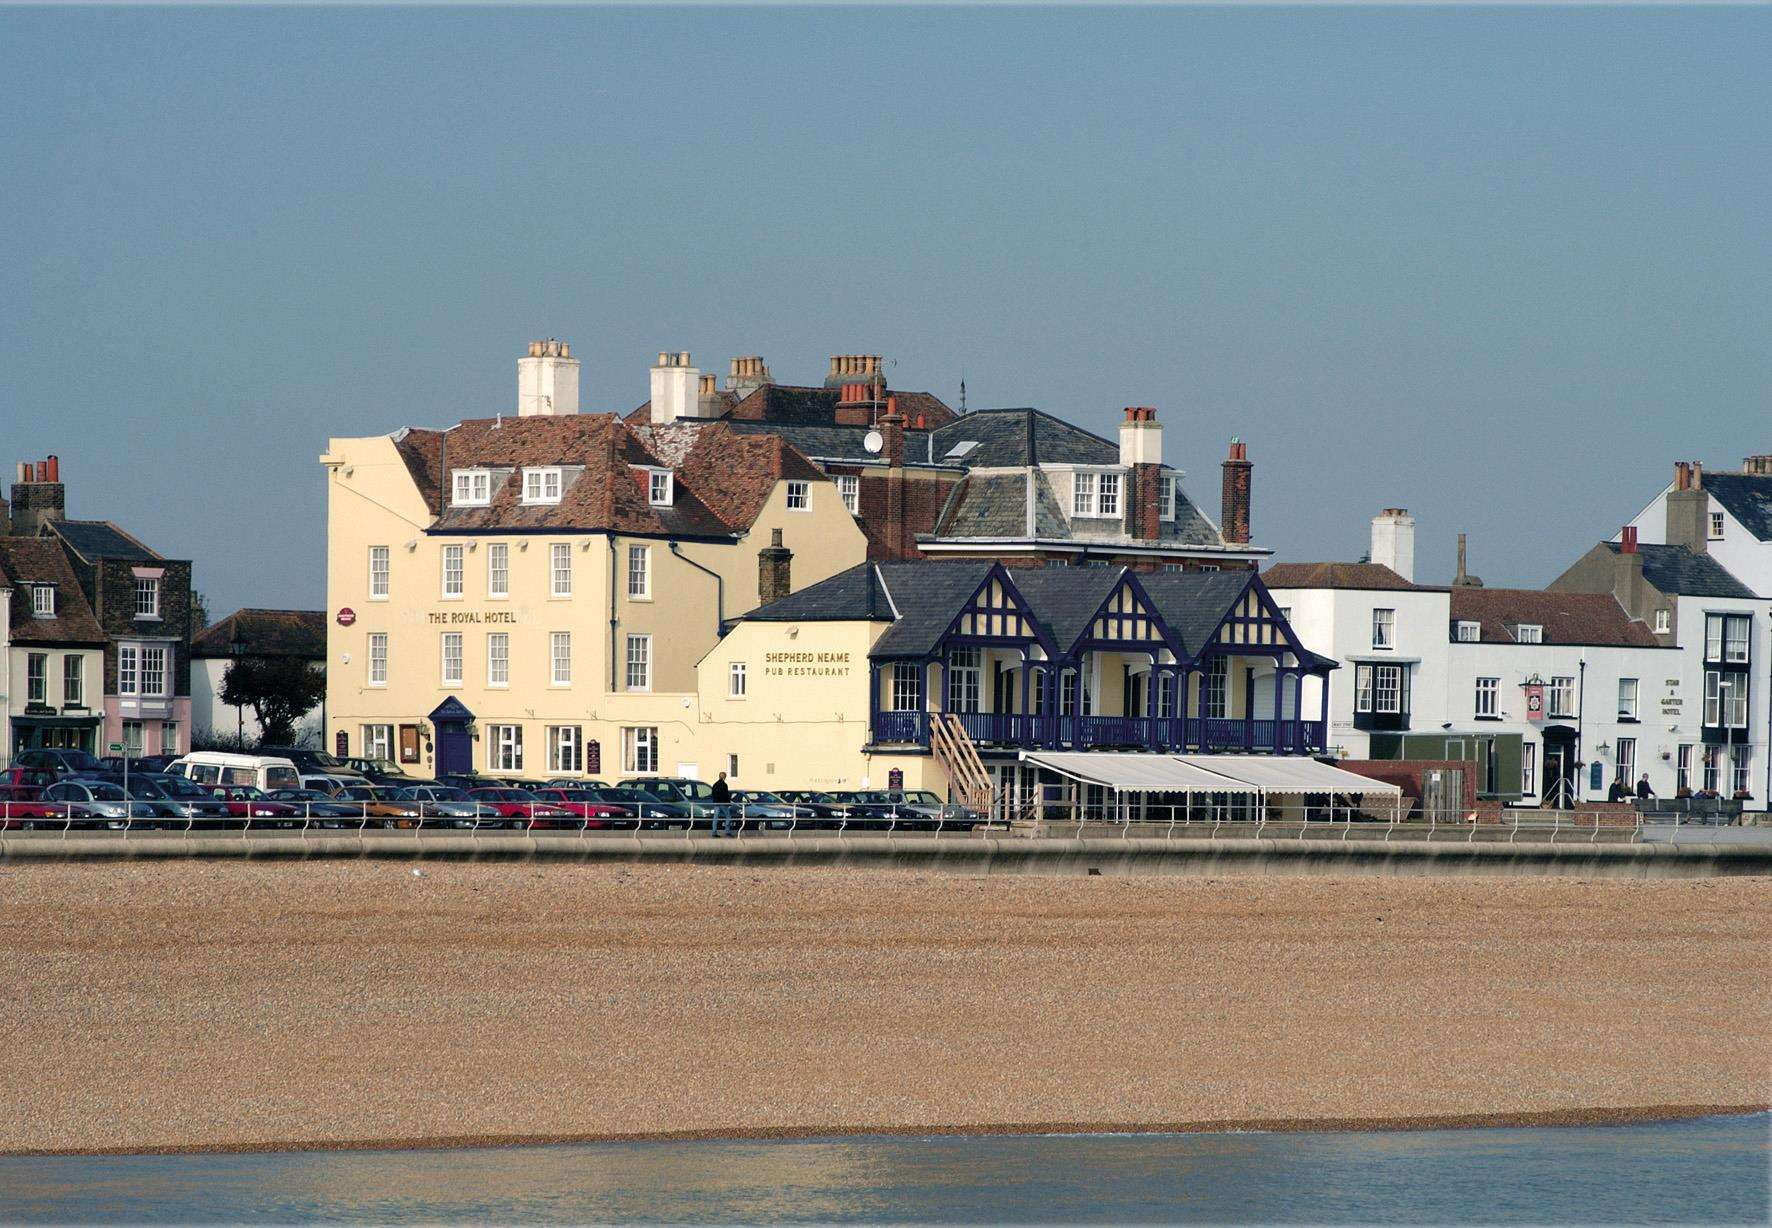 The Royal Hotel in Deal